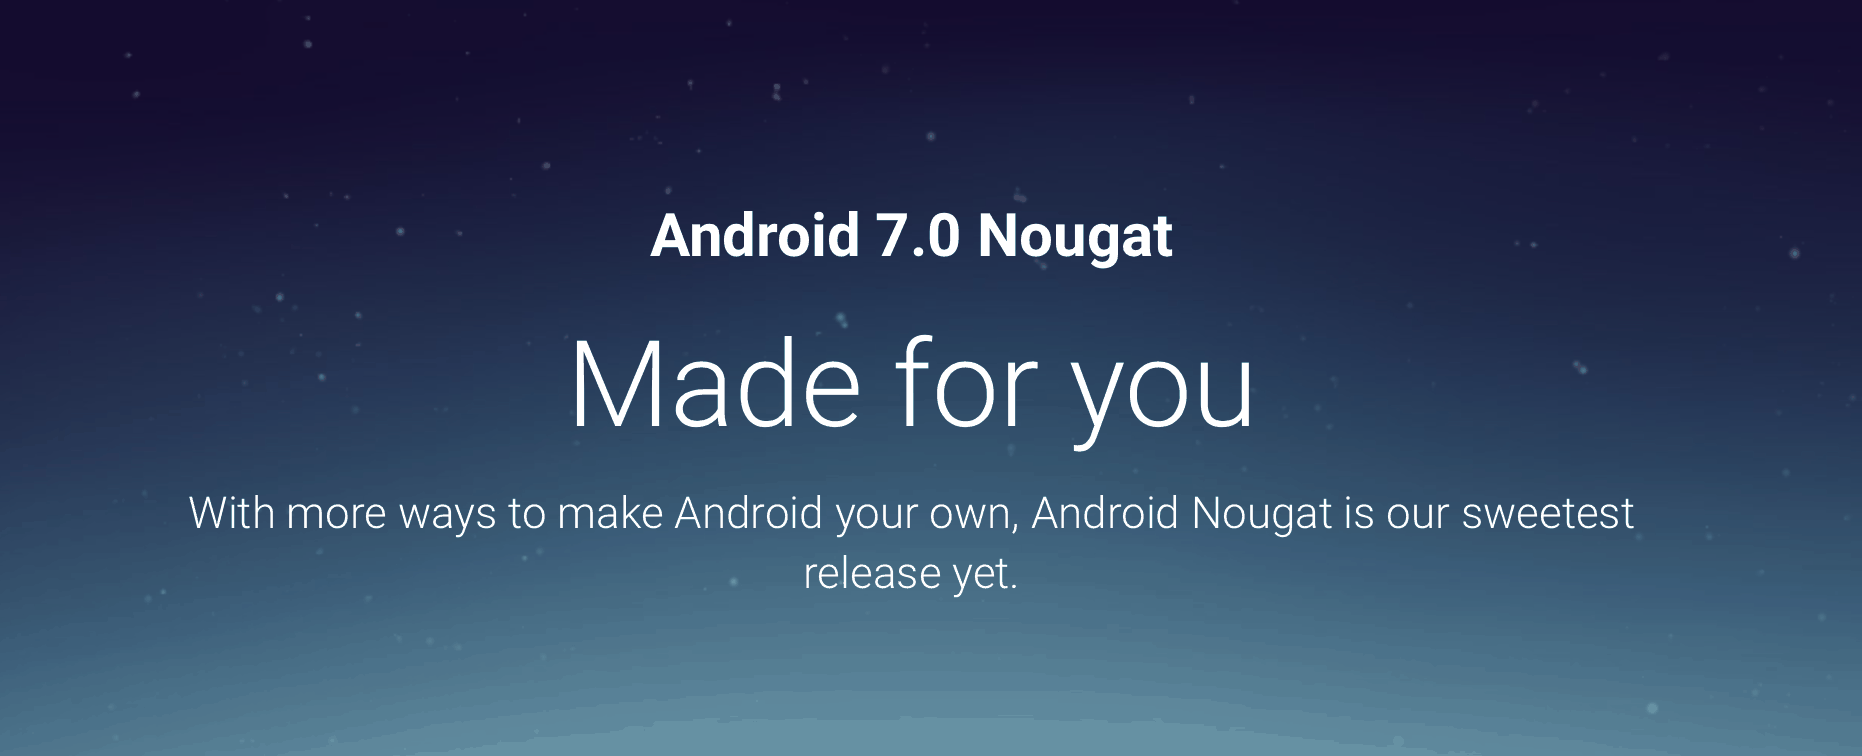 Android Nougat SC